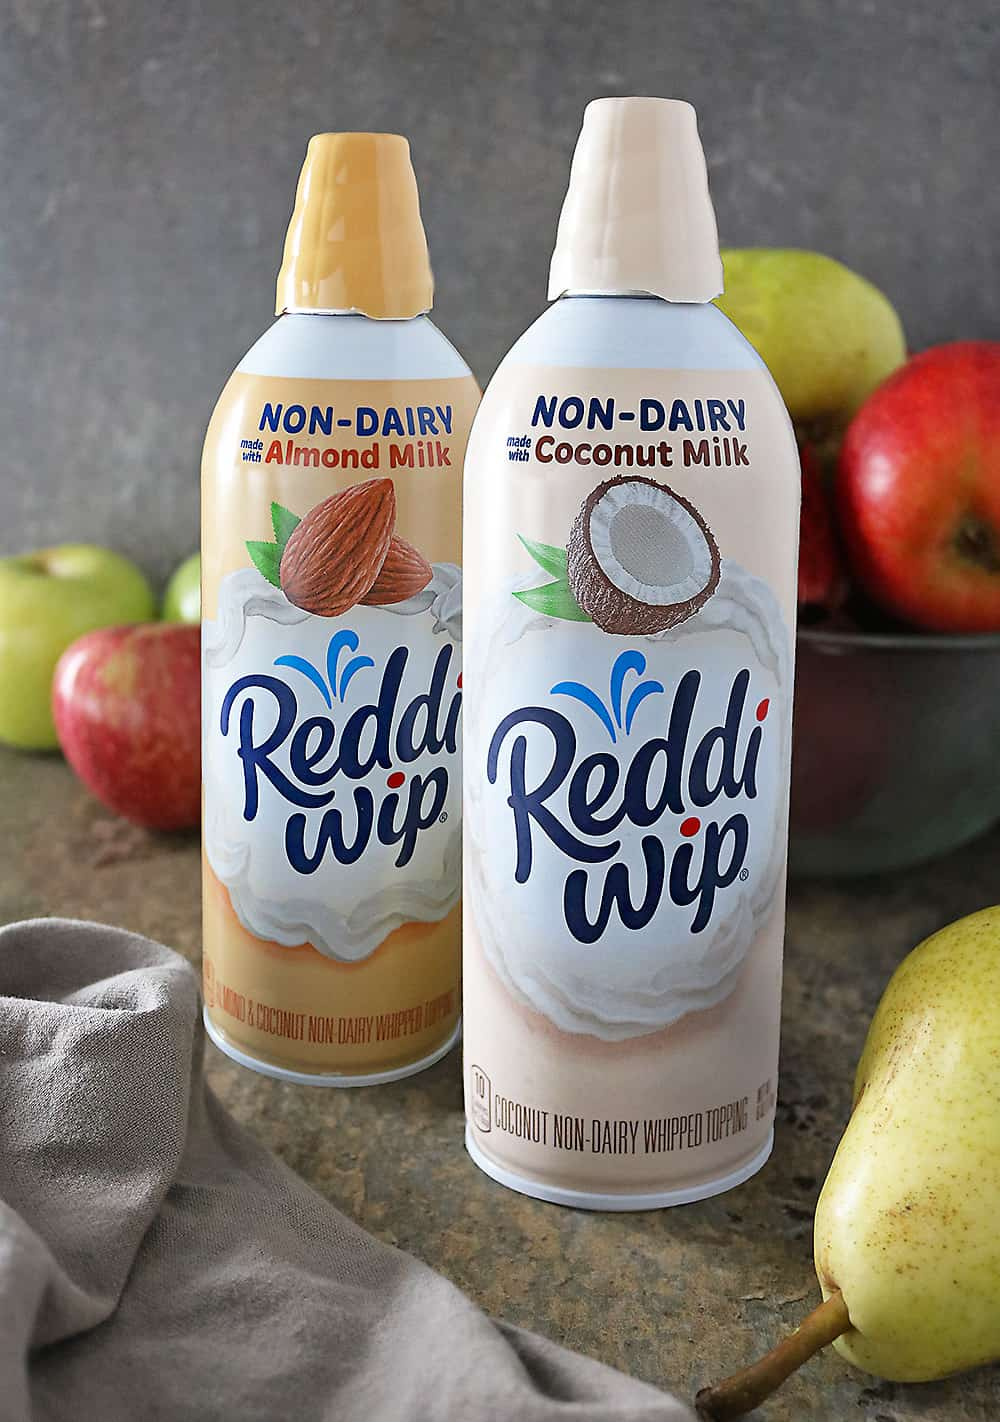 Reddi wip Non Dairy whipped topping photo